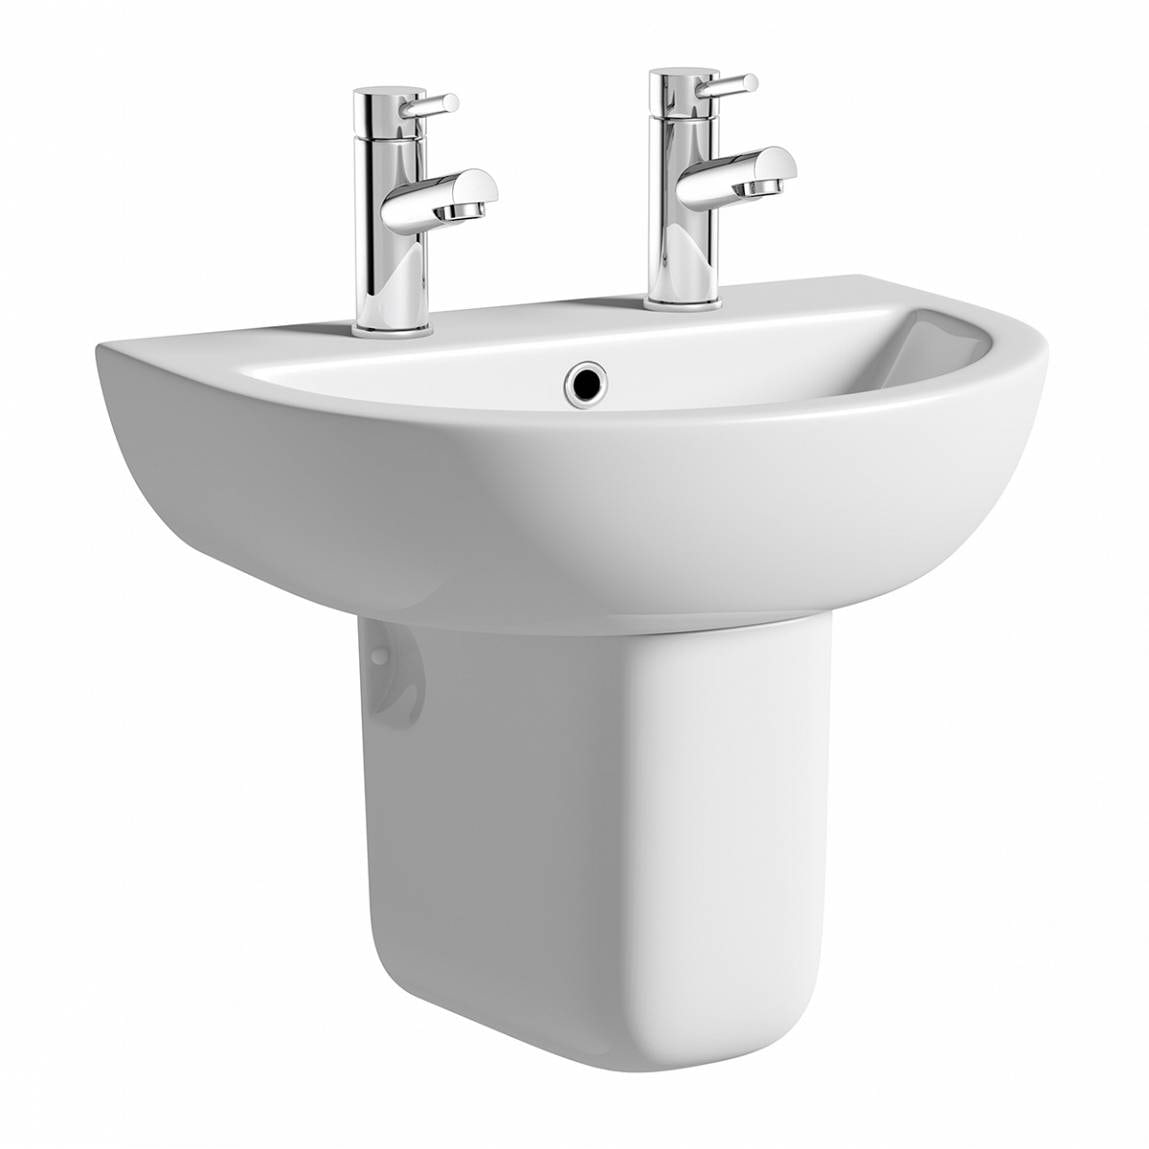 Orchard Elena 2 tap hole semi pedestal basin with basin waste